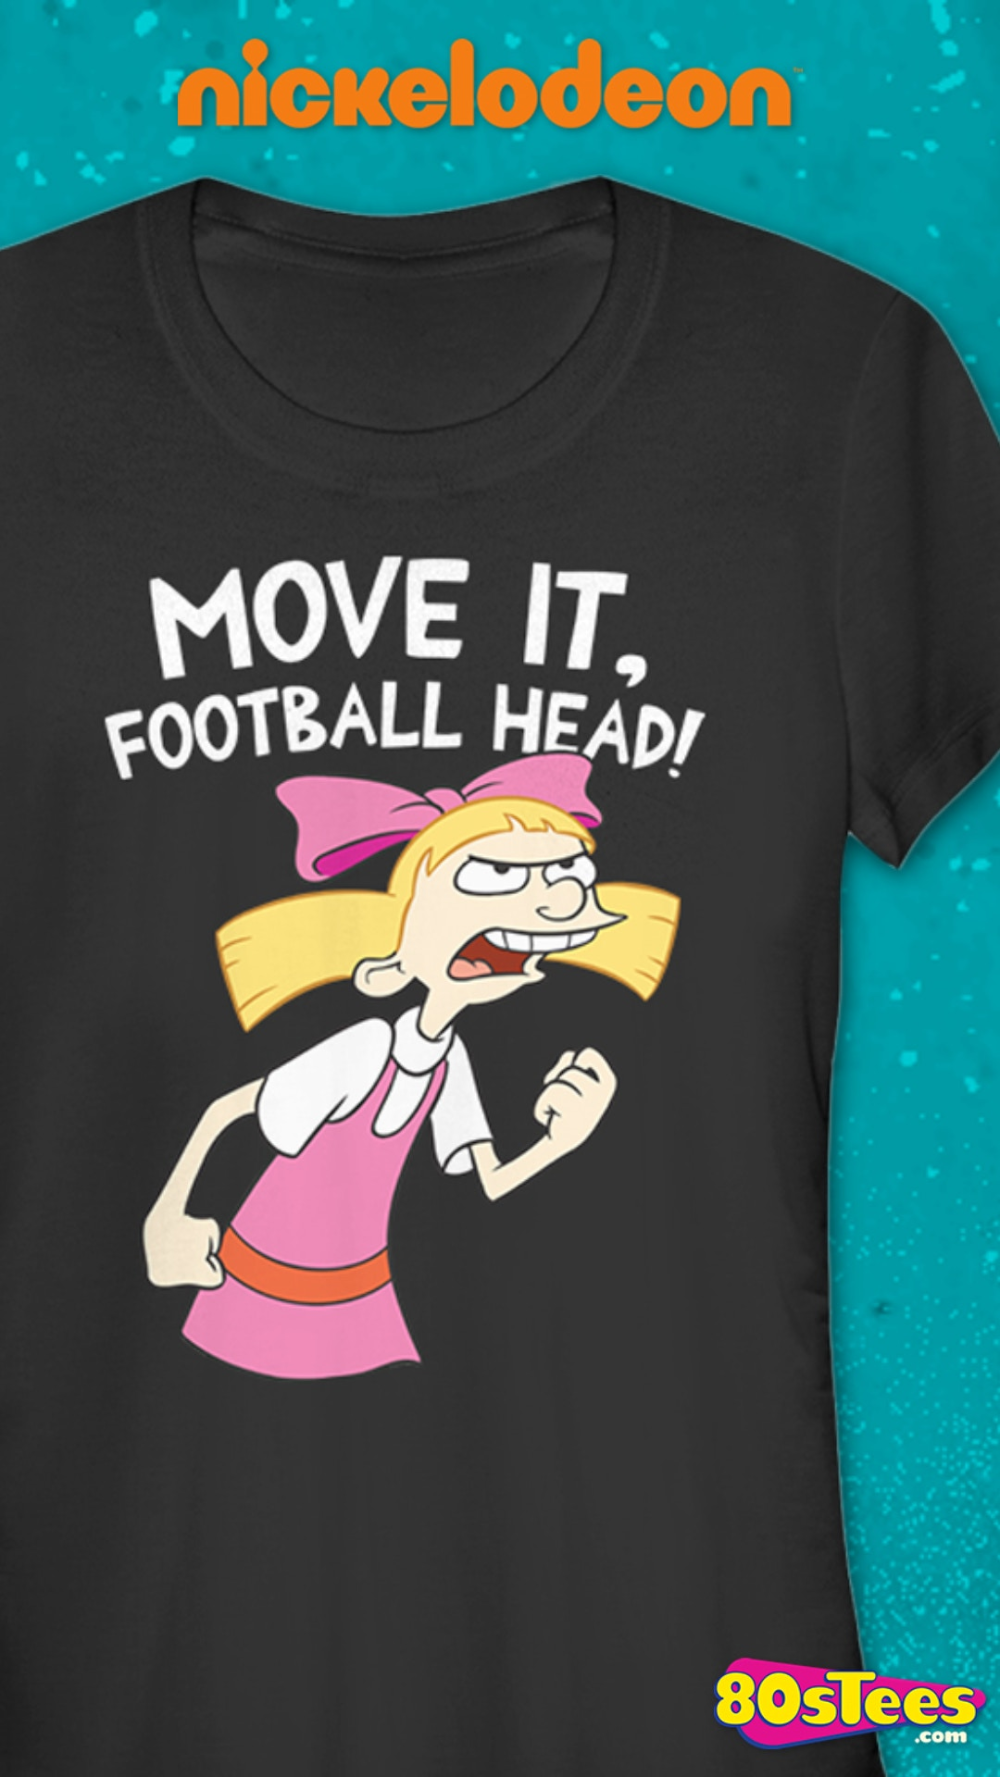 On the hit Nickelodeon animated series Hey Arnold!, fourth